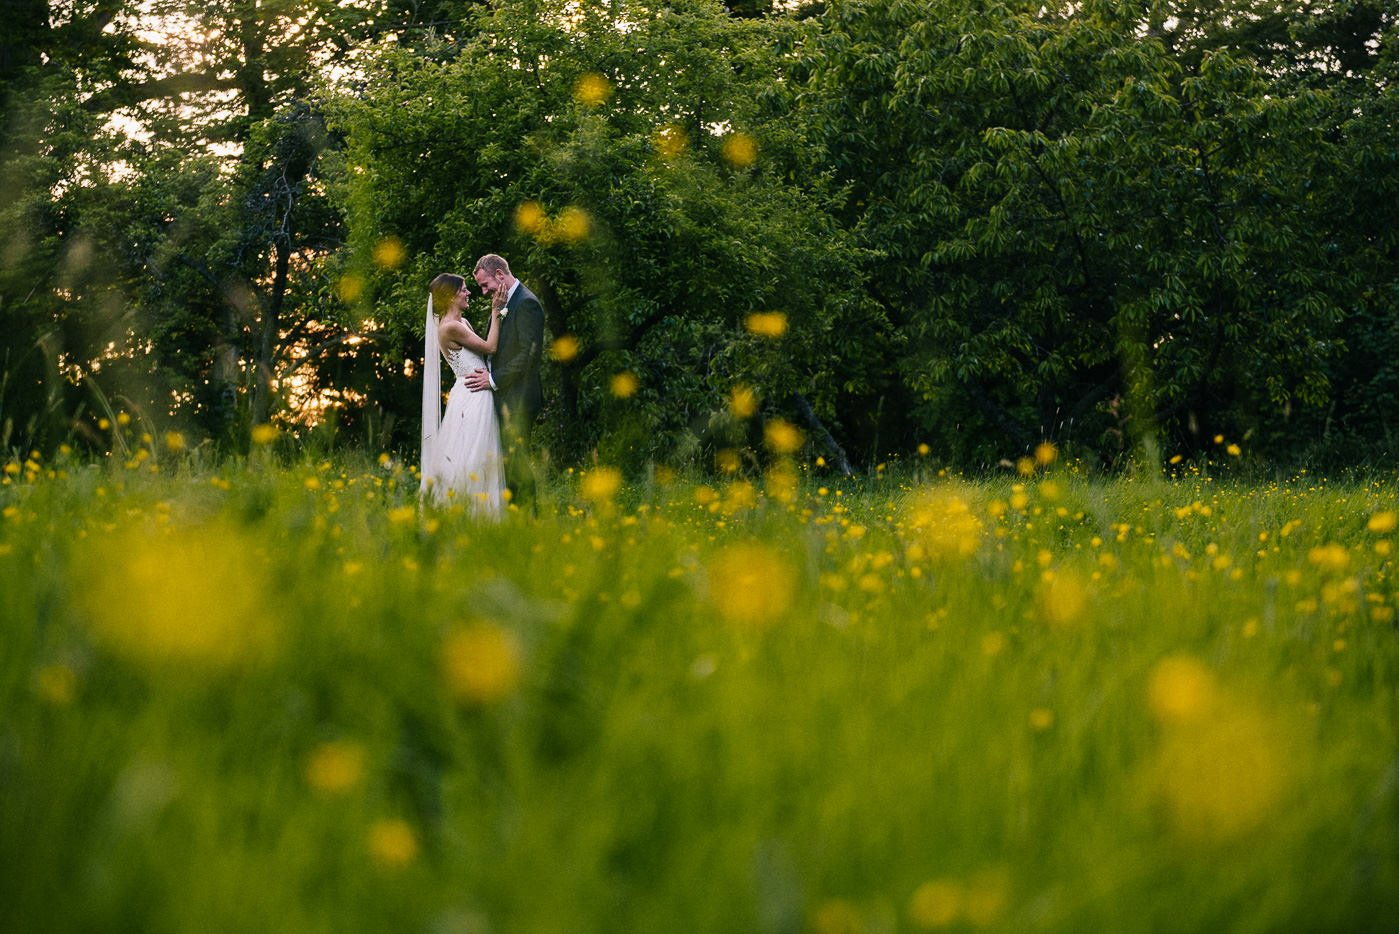 Sprivers Mansion Wedding sunset portrait in buttercups